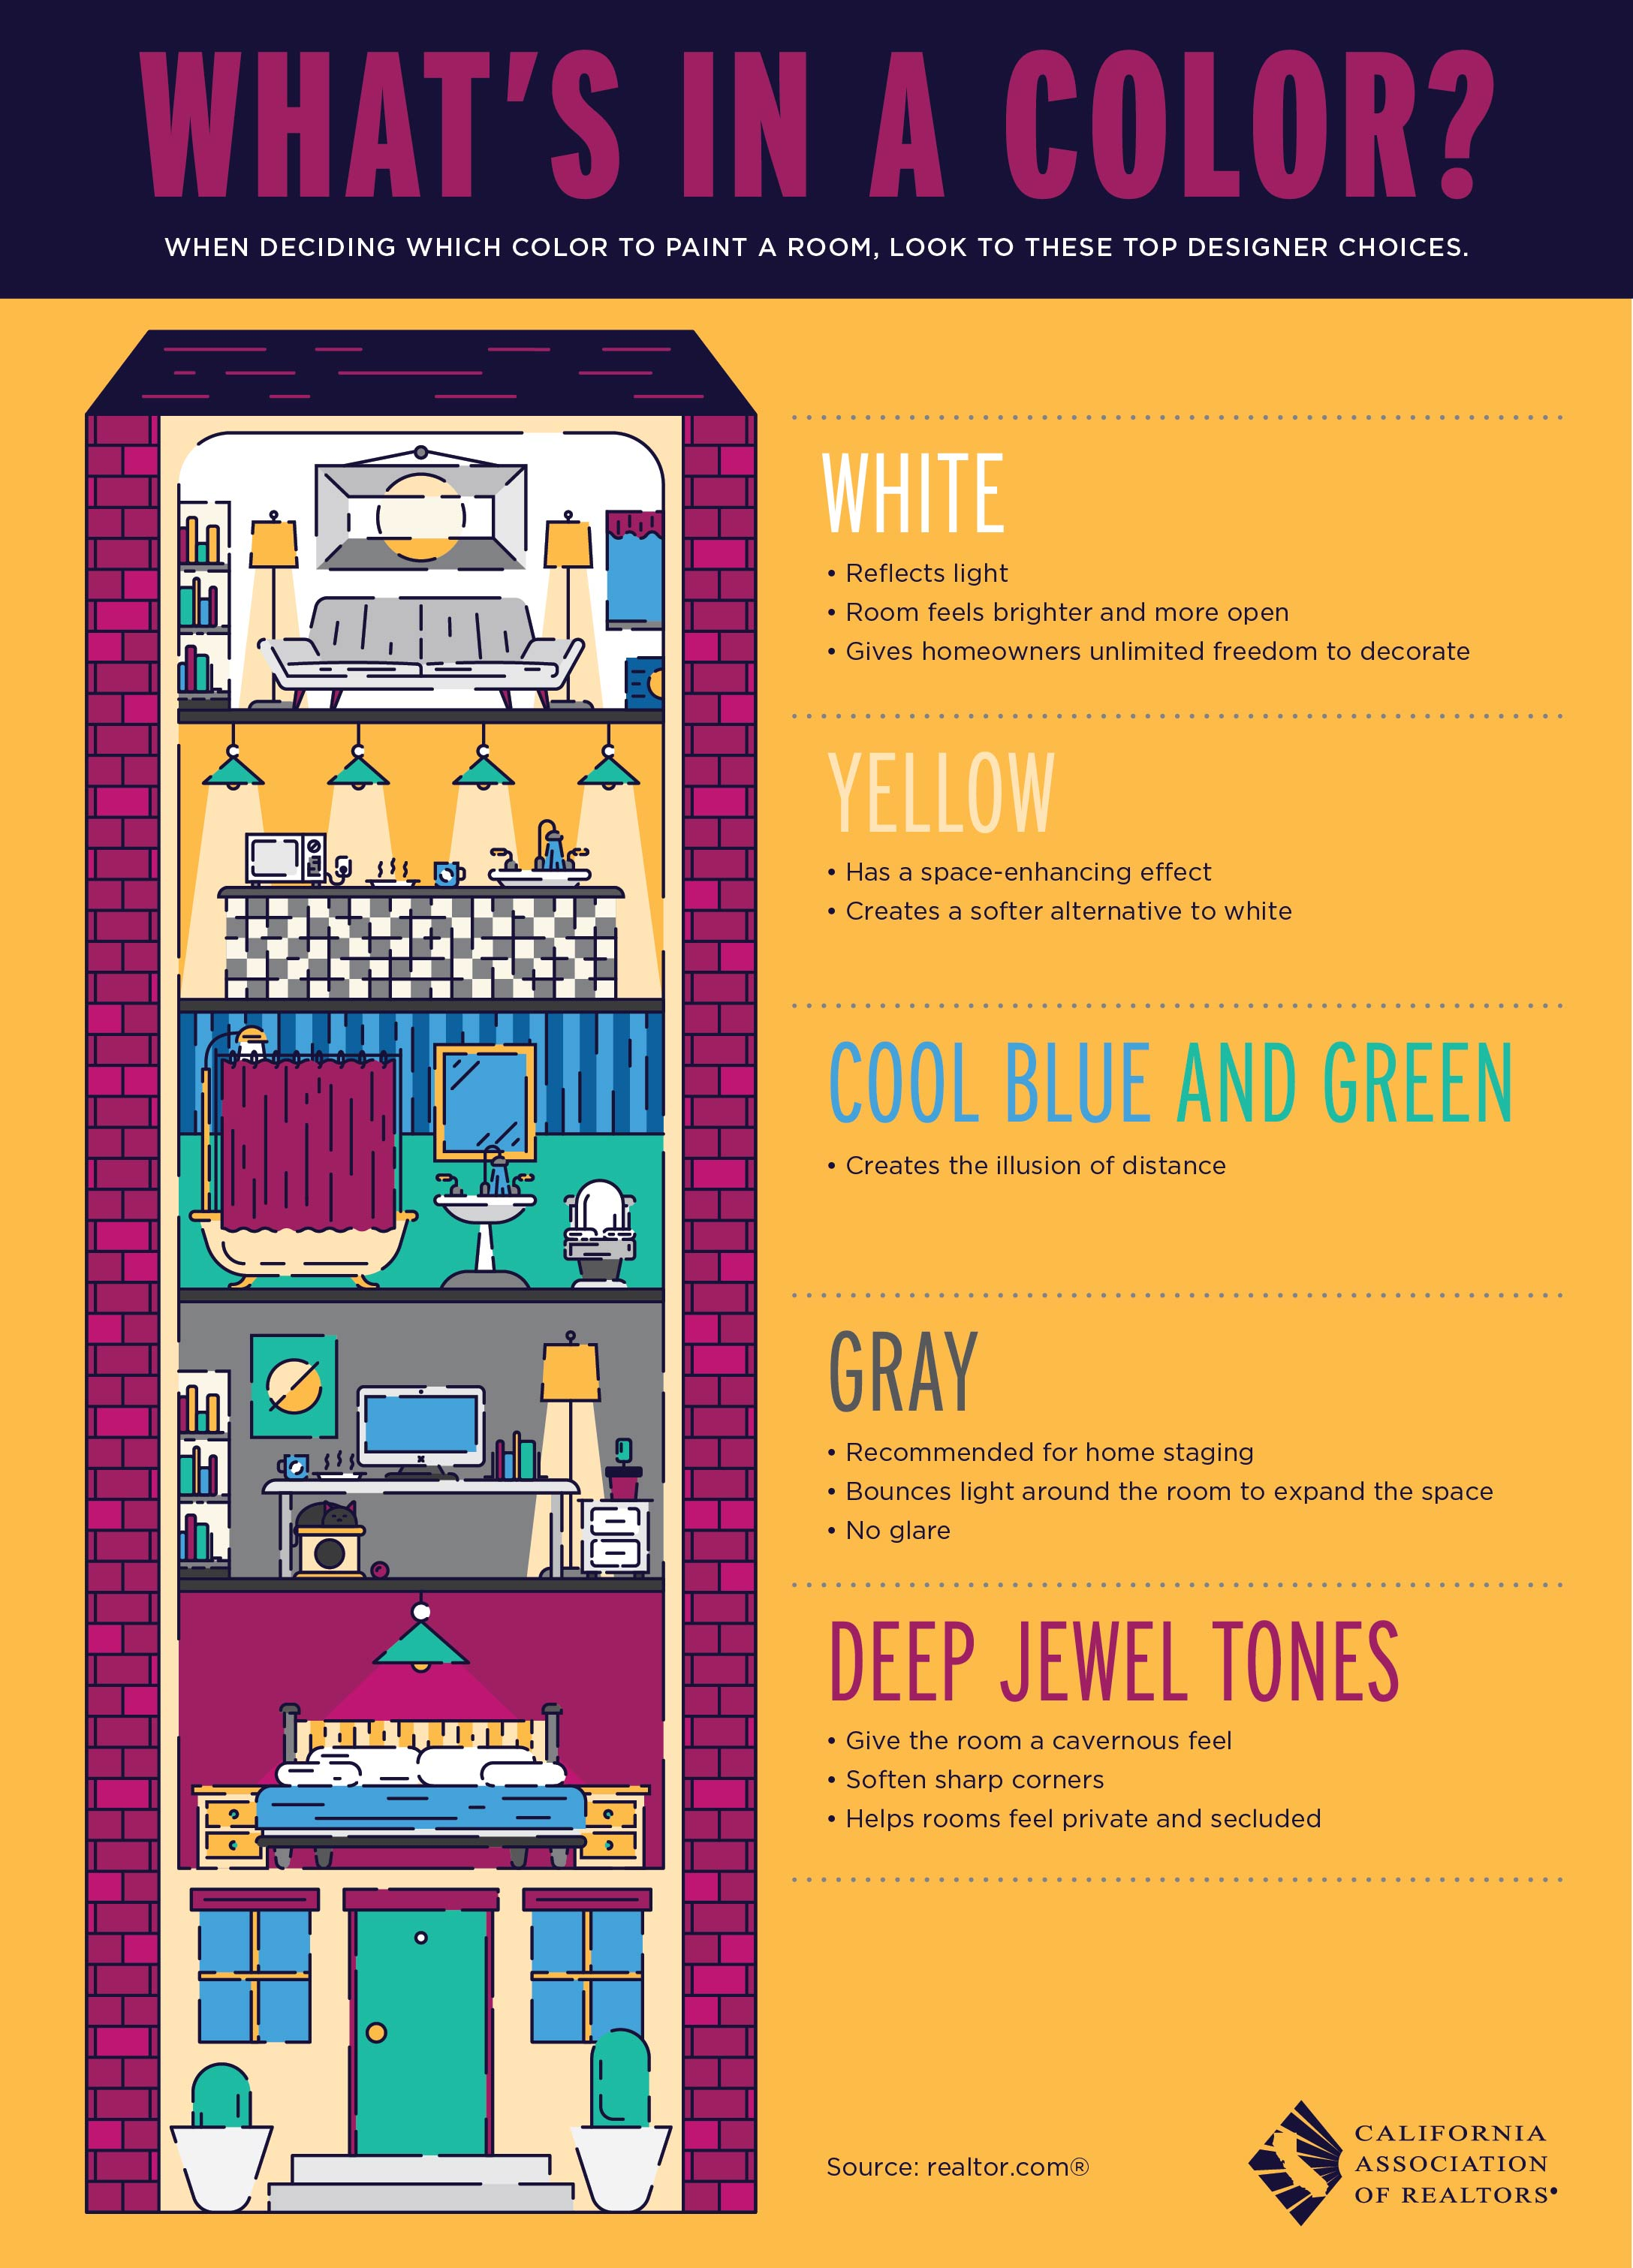 What's in a Color – California Association of REALTORS